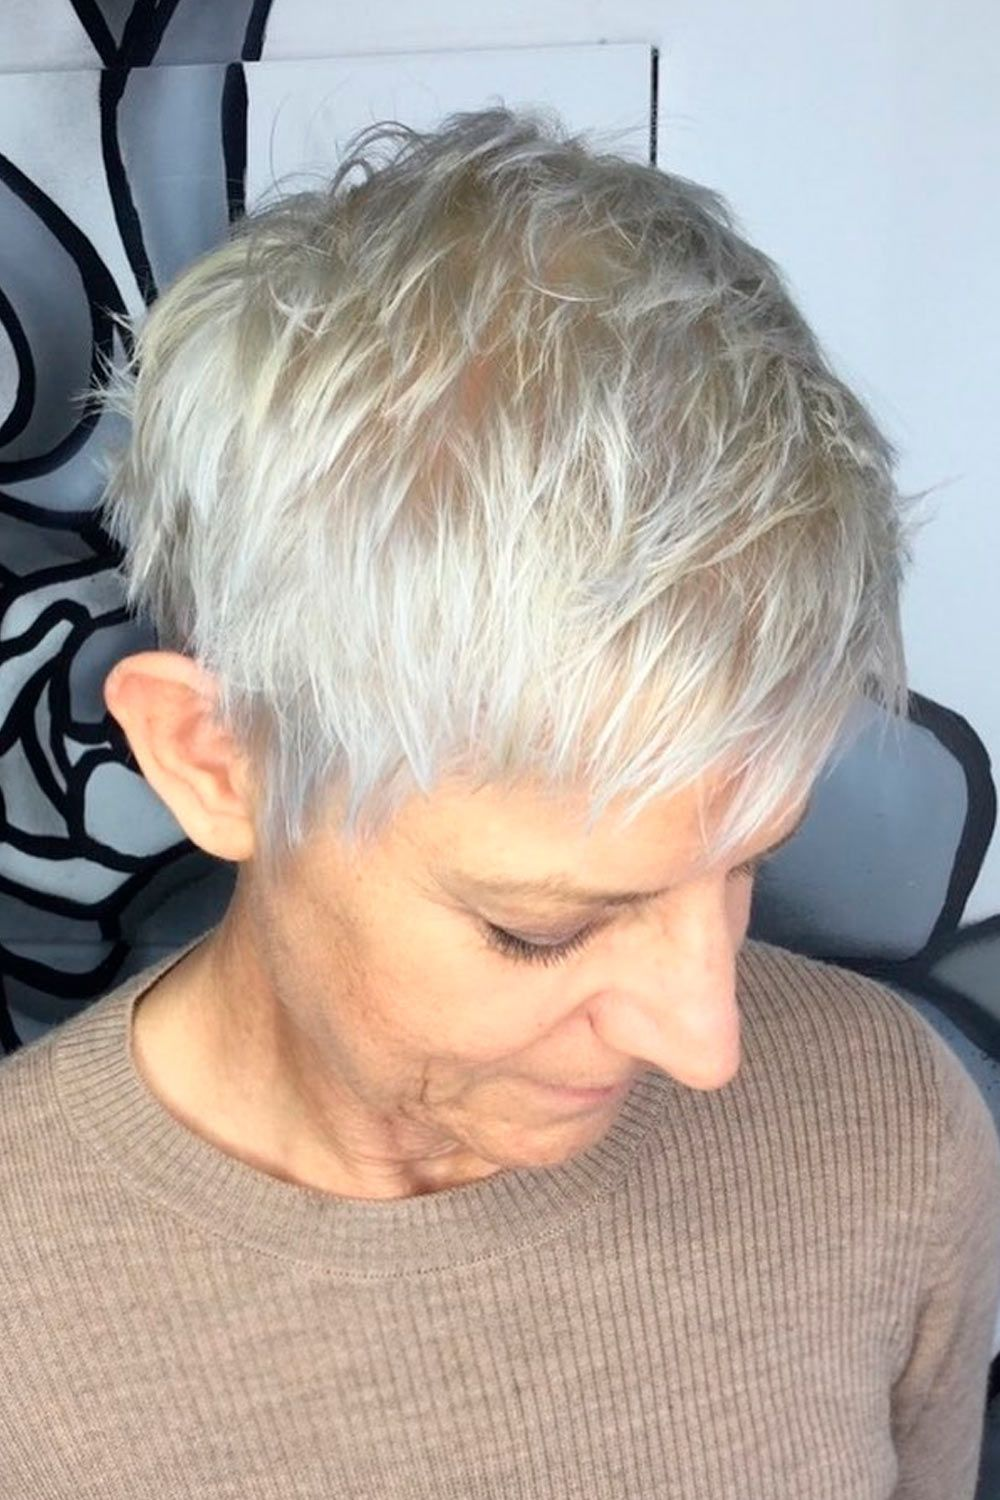 Layered Platinum Blonde Pixie, pixie haircuts for older women, pixie haircuts for fine thin hair over 50